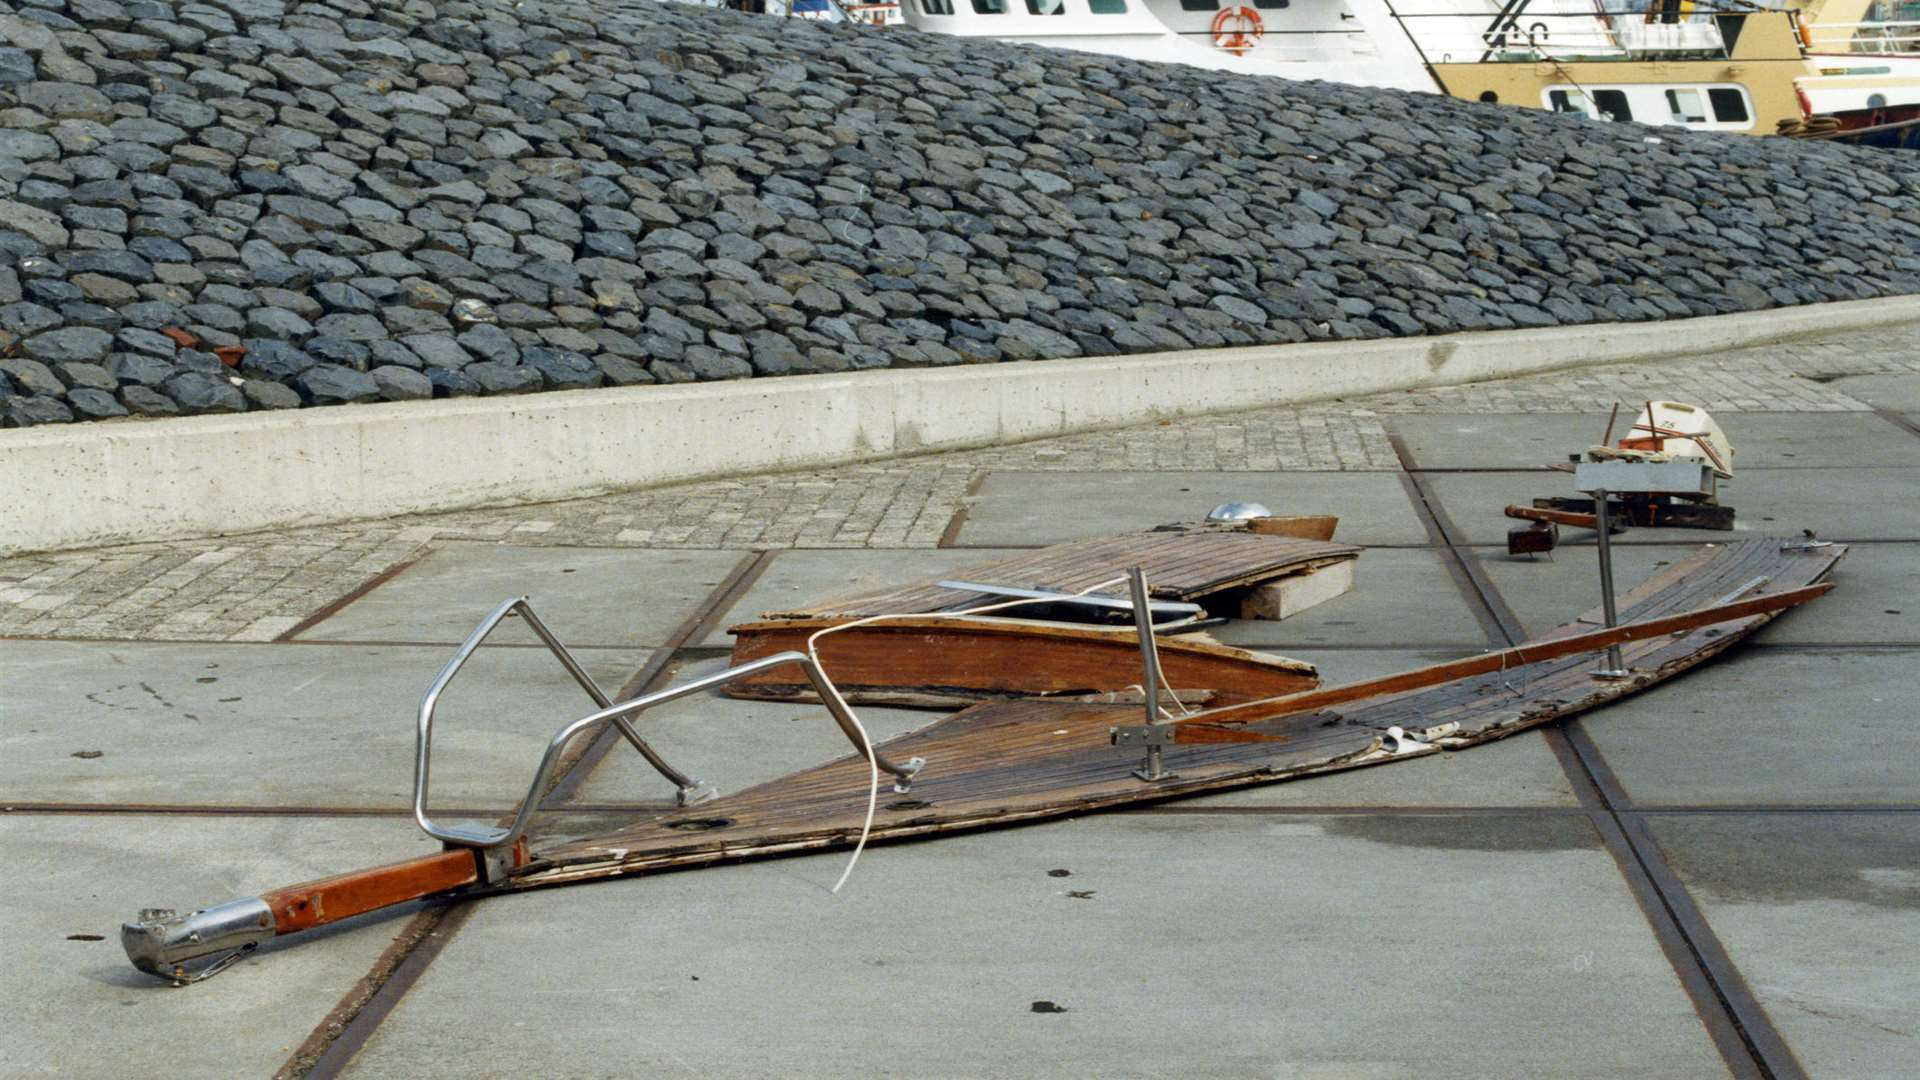 Parts of the wooden boat found in Holland